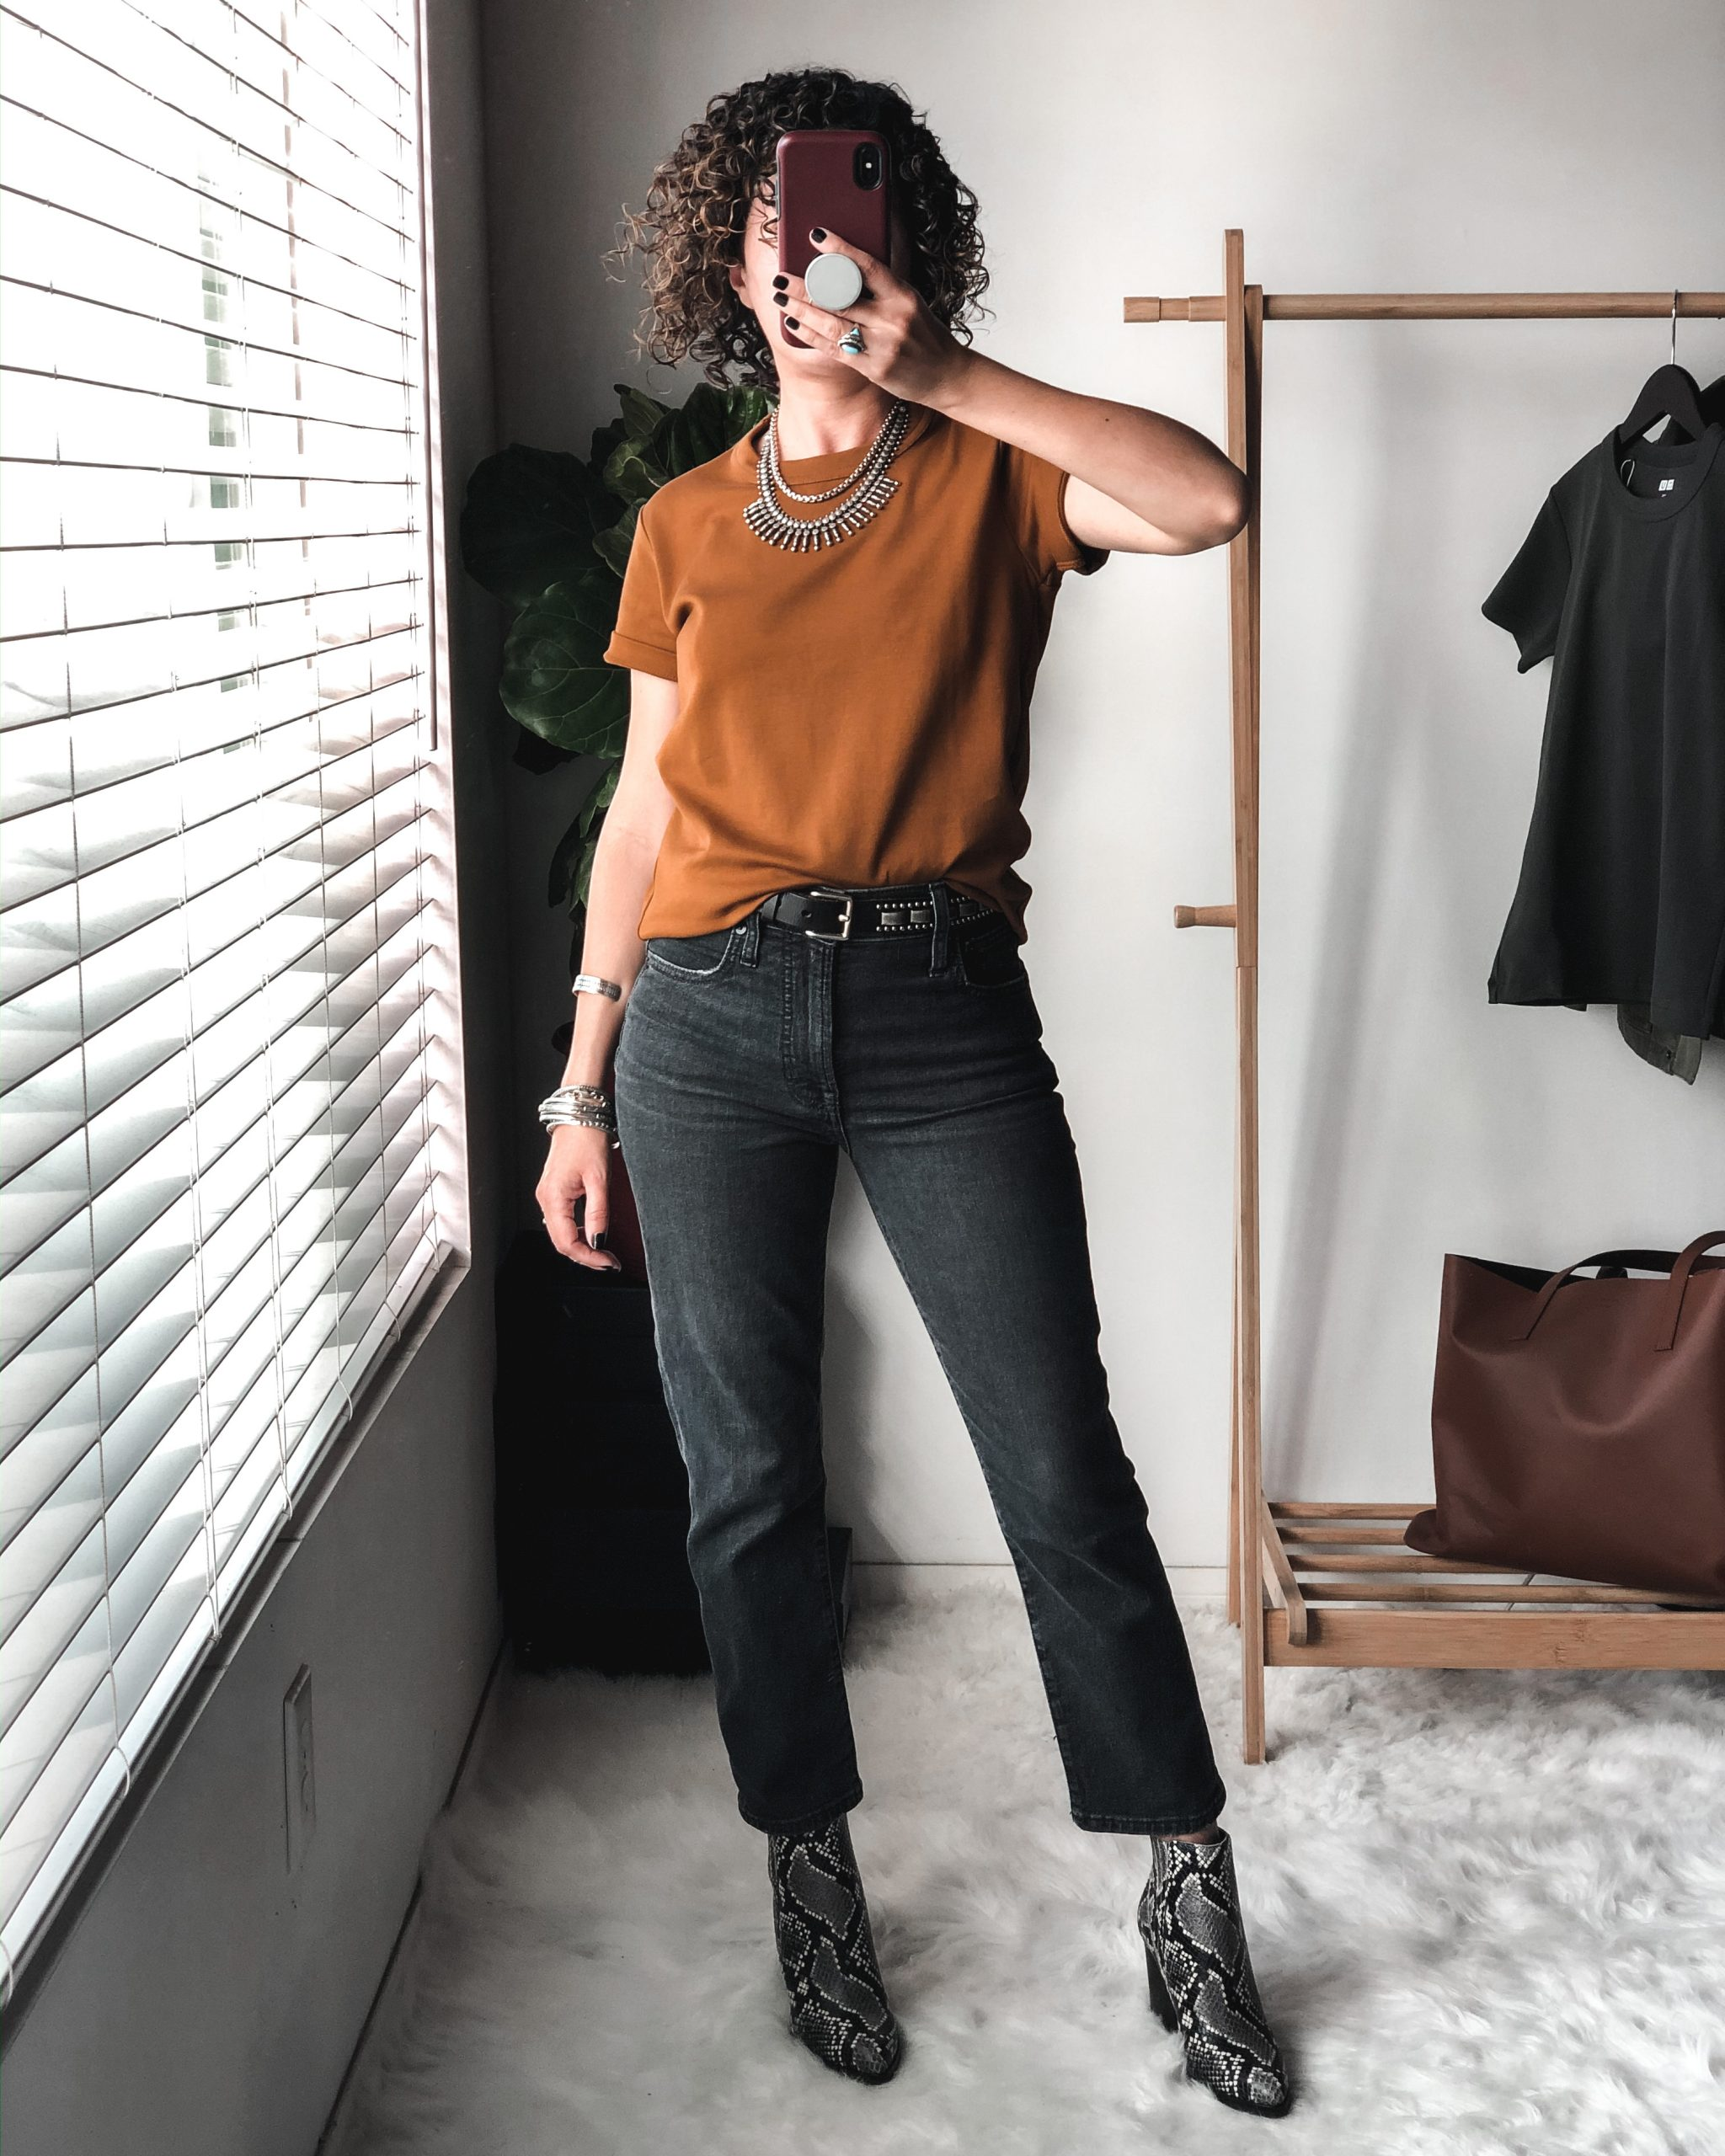 Uniqlo U Crew Neck Tee Outfit Idea for Petites